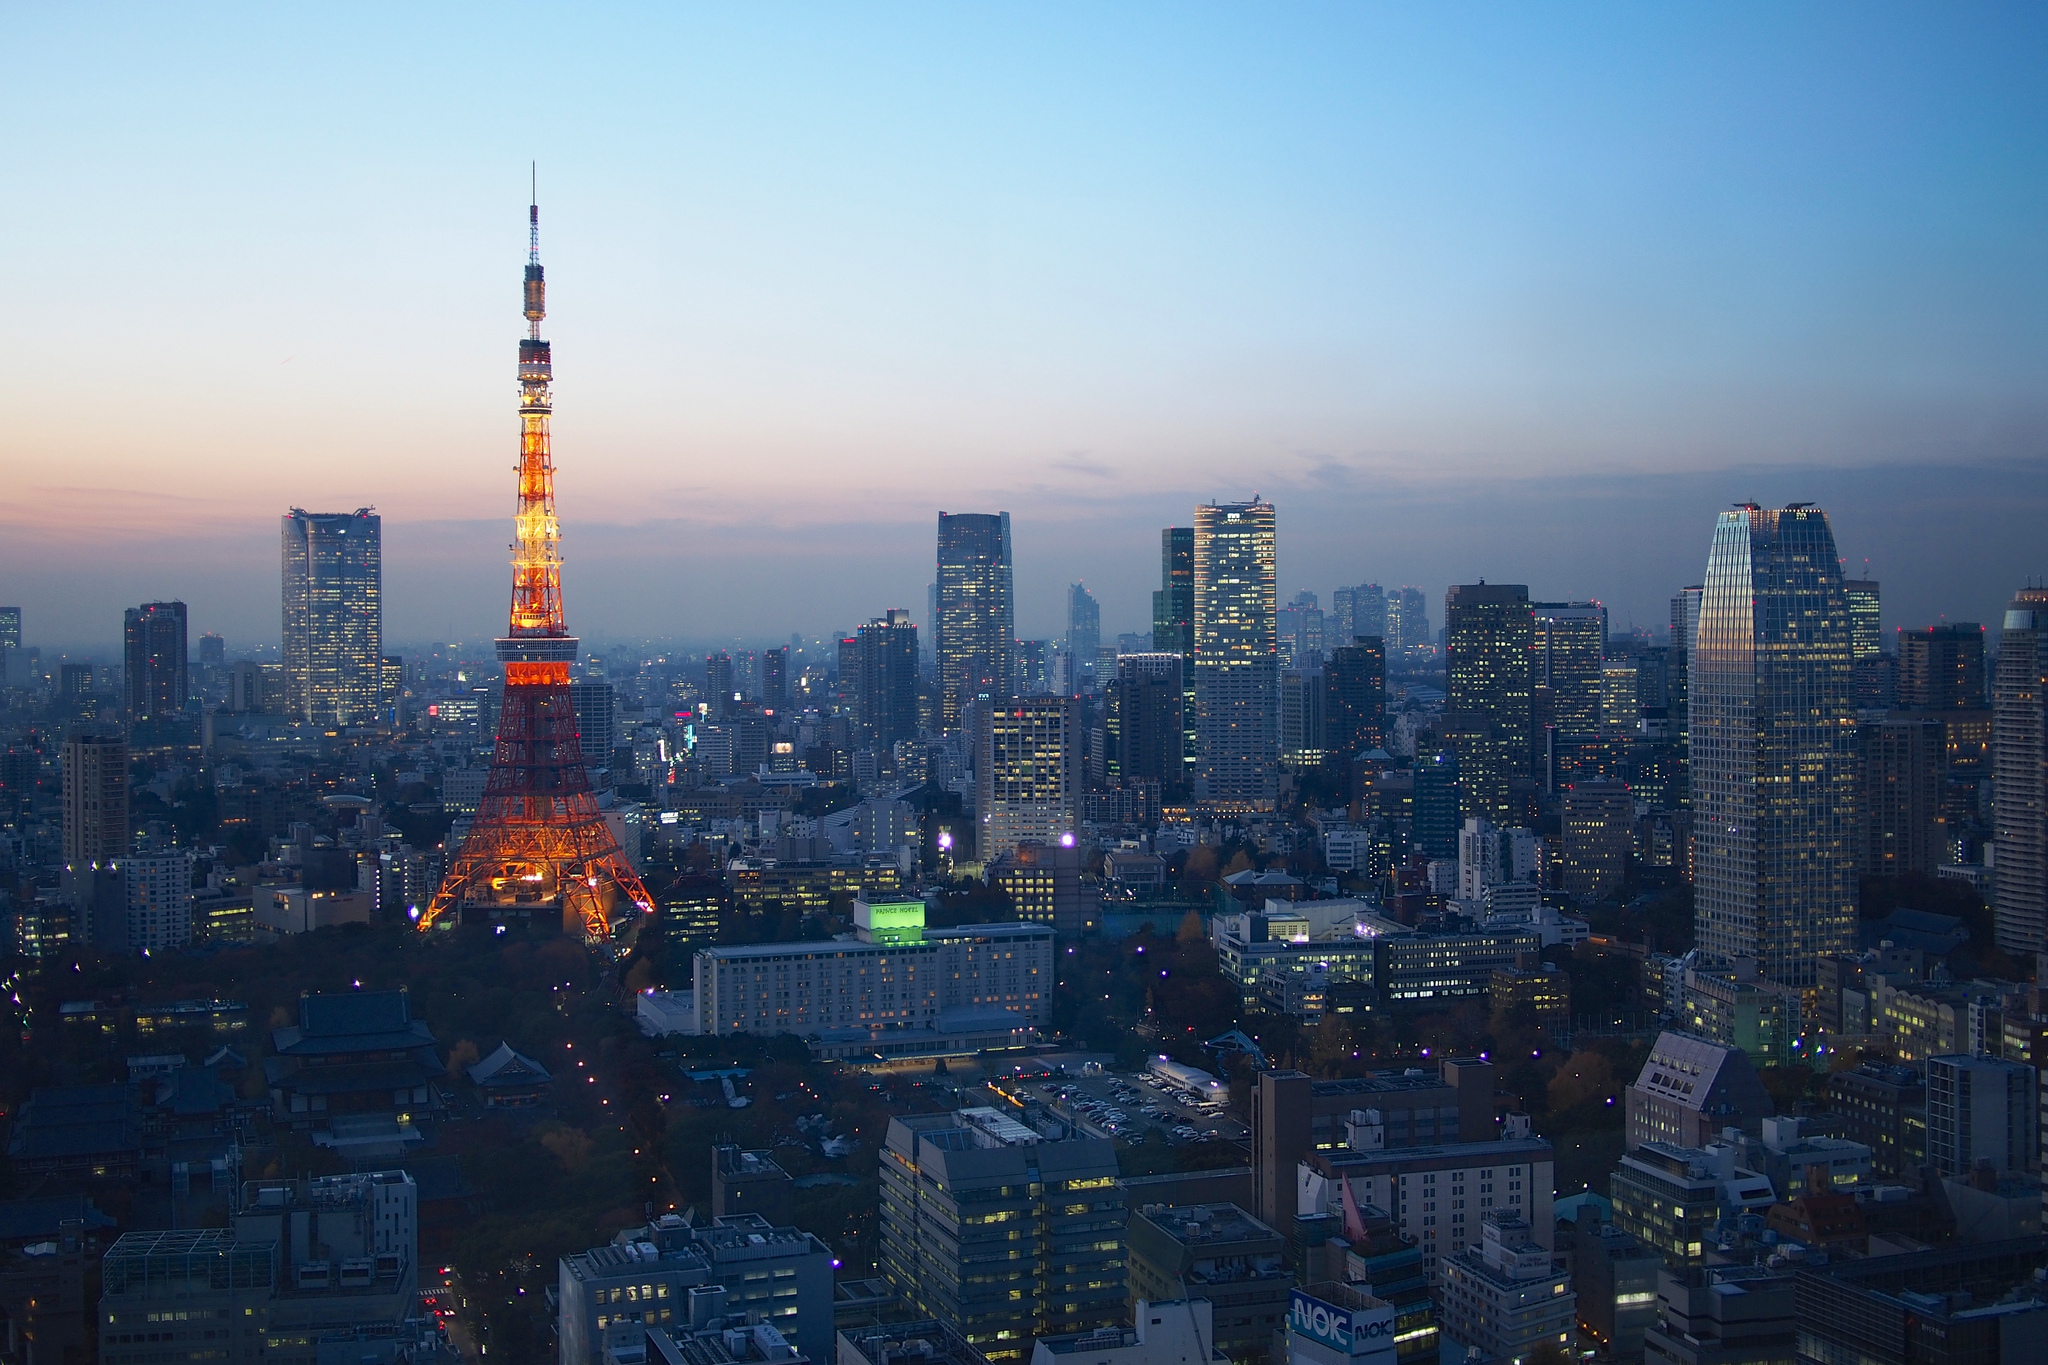 Blue Hour over Tokyo by Balint Foldesl